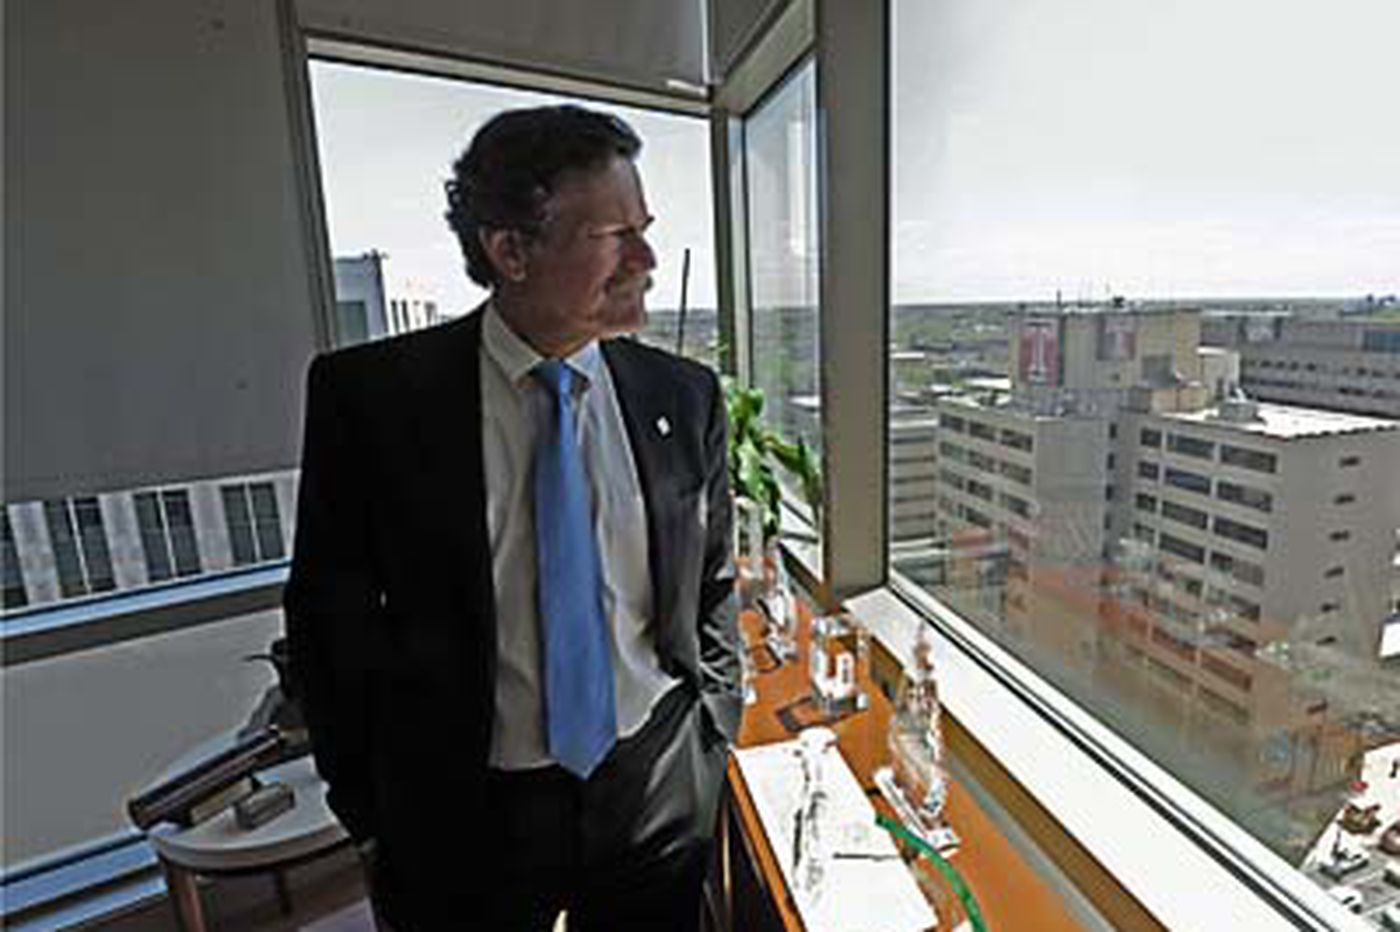 Growth is CEO's diagnosis for Temple health system